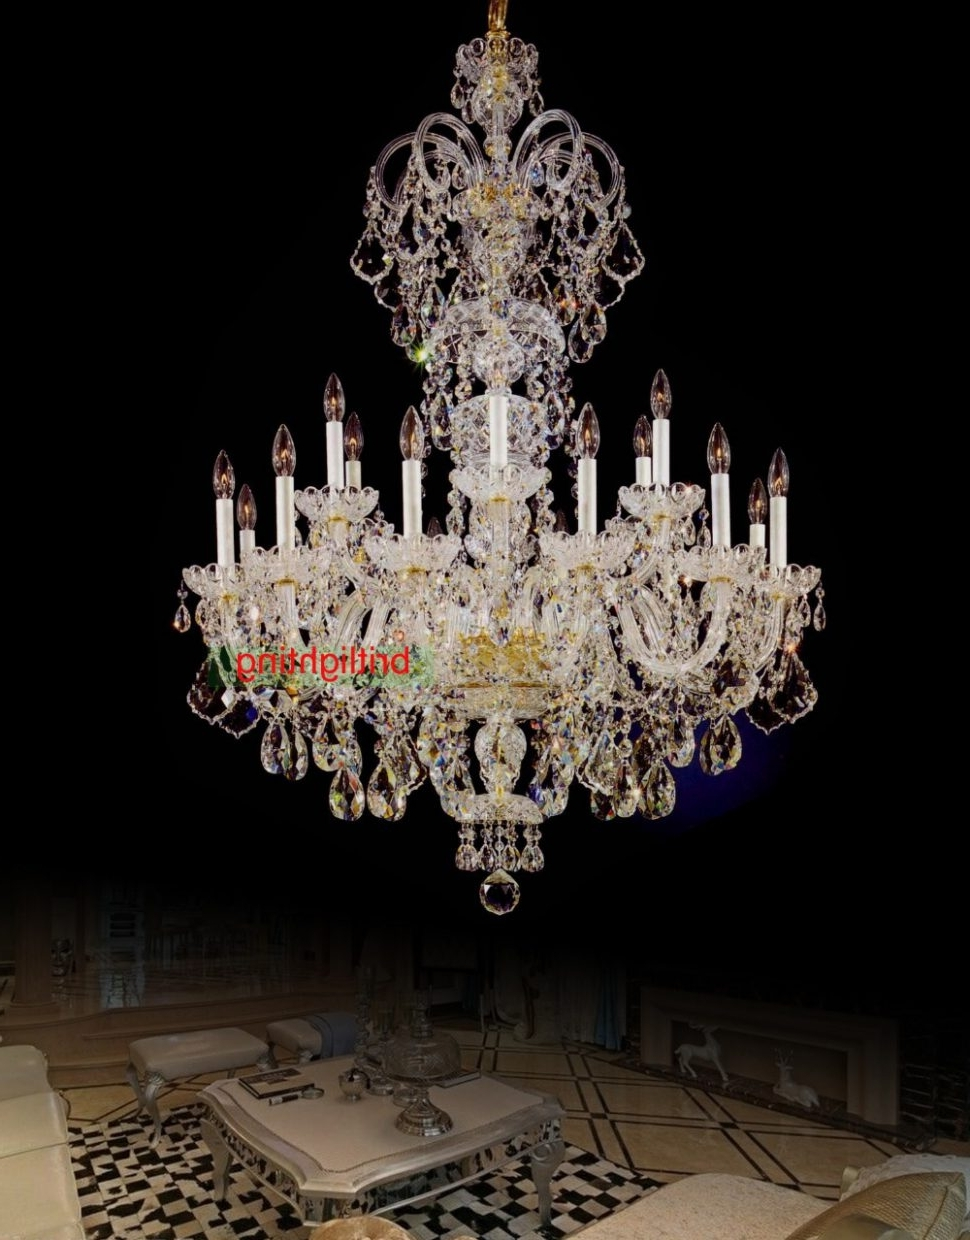 2018 Extra Large Crystal Chandeliers In Light : Large Crystal Chandelier Entrance Hall Lighting Luxury Light (View 1 of 20)